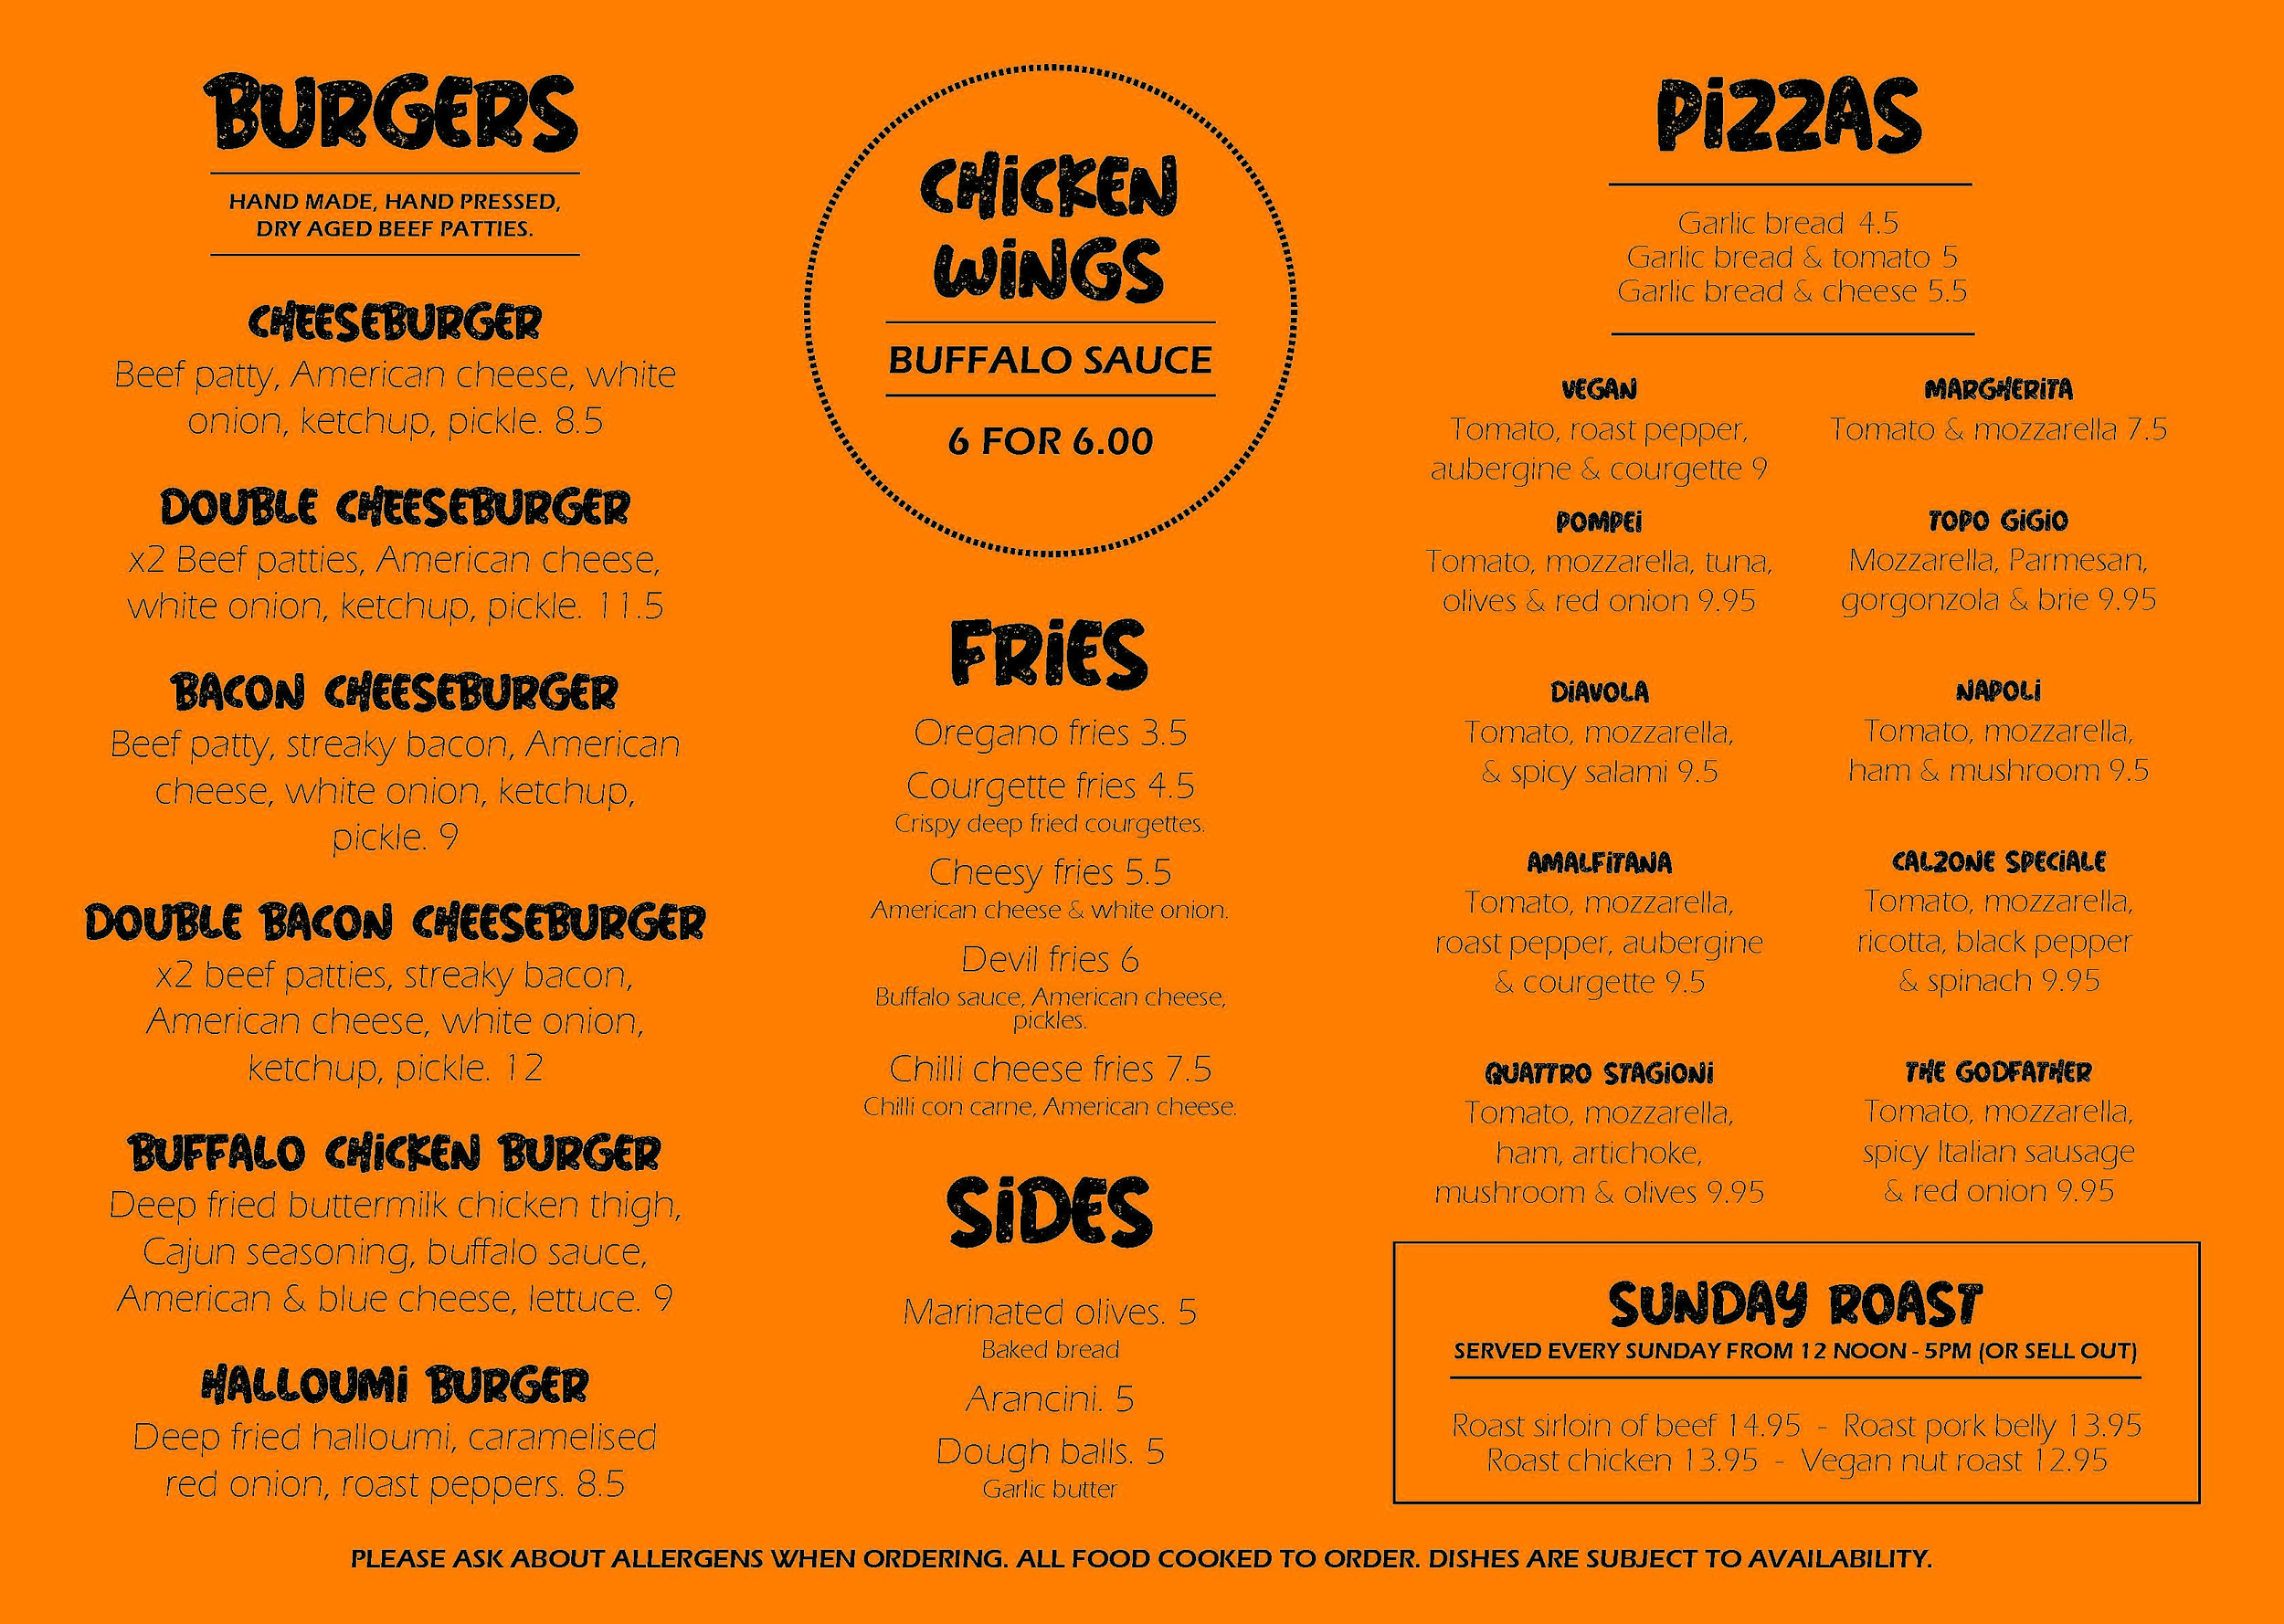 MONDAY NIGHT:  PIZZAS ONLY 6-9 PM.   TUESDAY TO SATURDAY:  FULL MENU.   SUNDAYS:  ROASTS & PIZZAS UNTIL 4:30 PM.